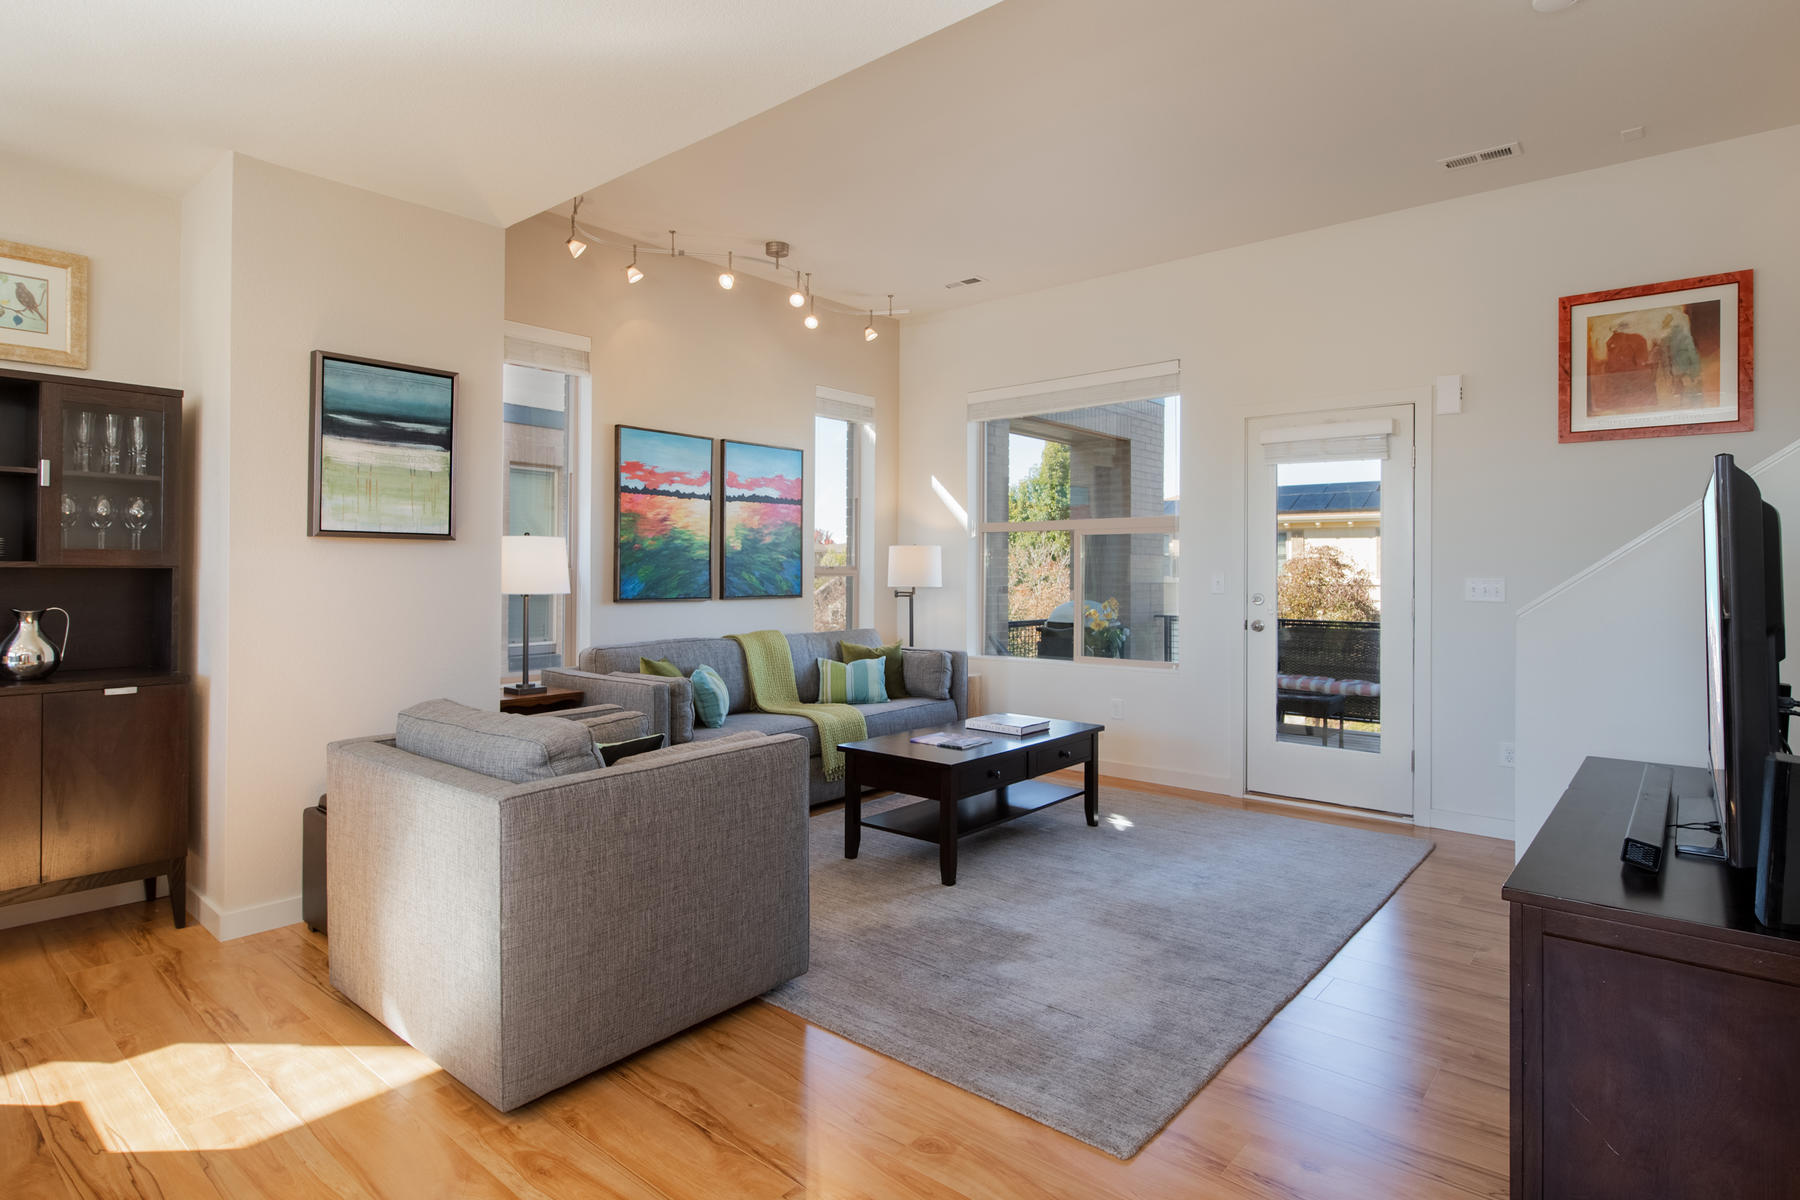 Additional photo for property listing at Walk Into The Light Of This Spacious And Contemporary Corner-Unit Townhouse 8224 E 24th Dr Denver, Colorado 80238 United States